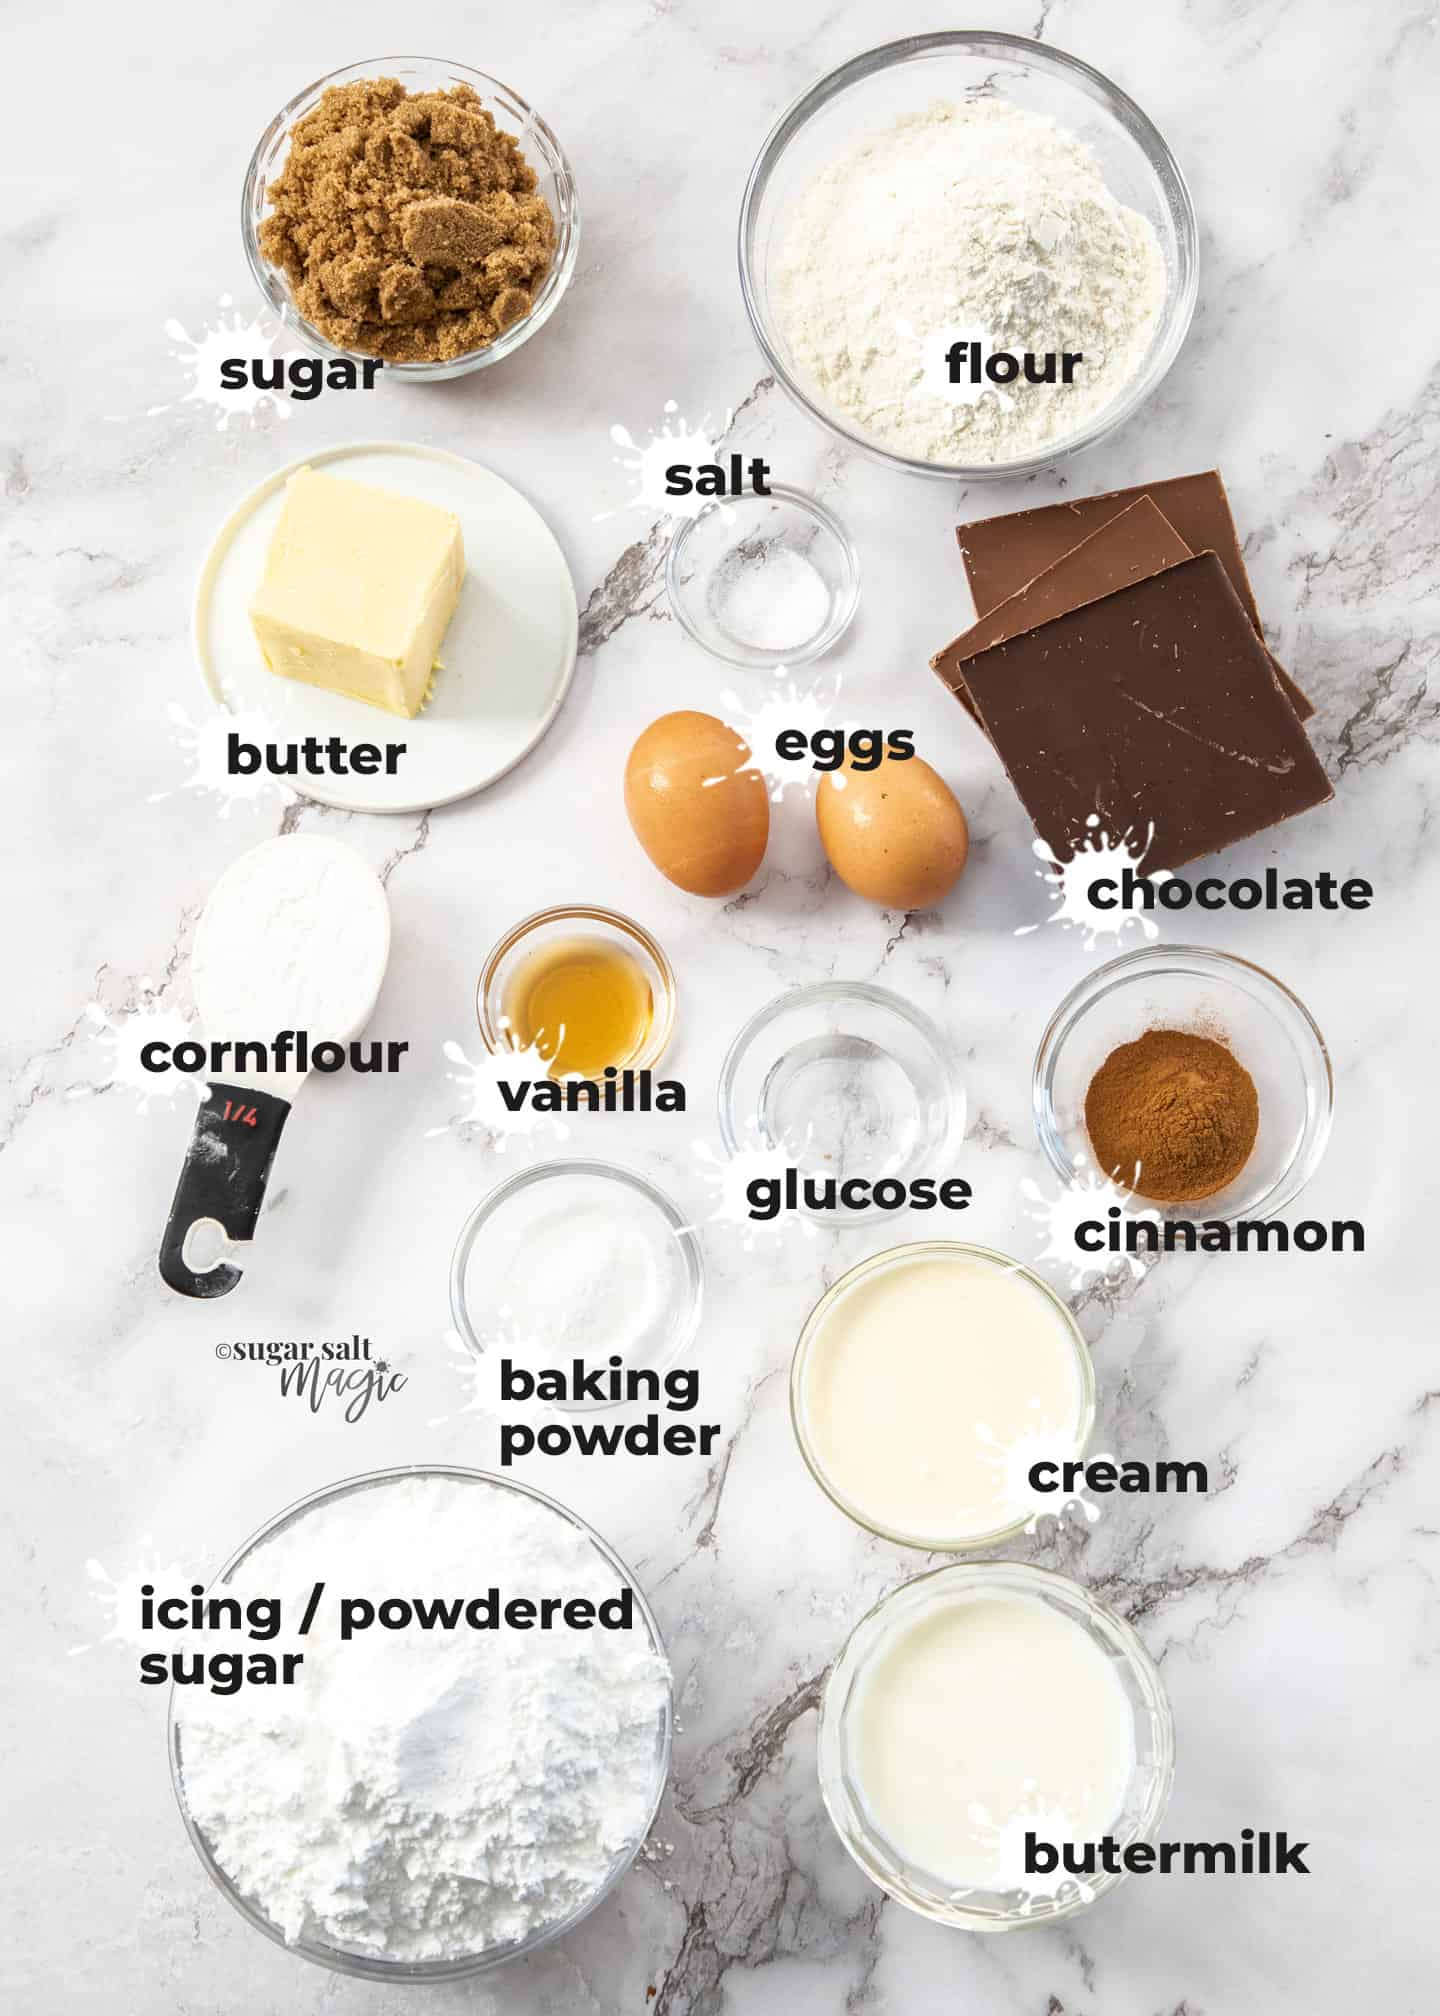 Ingredients for chocolate doughnut cupcakes on a marble benchtop.